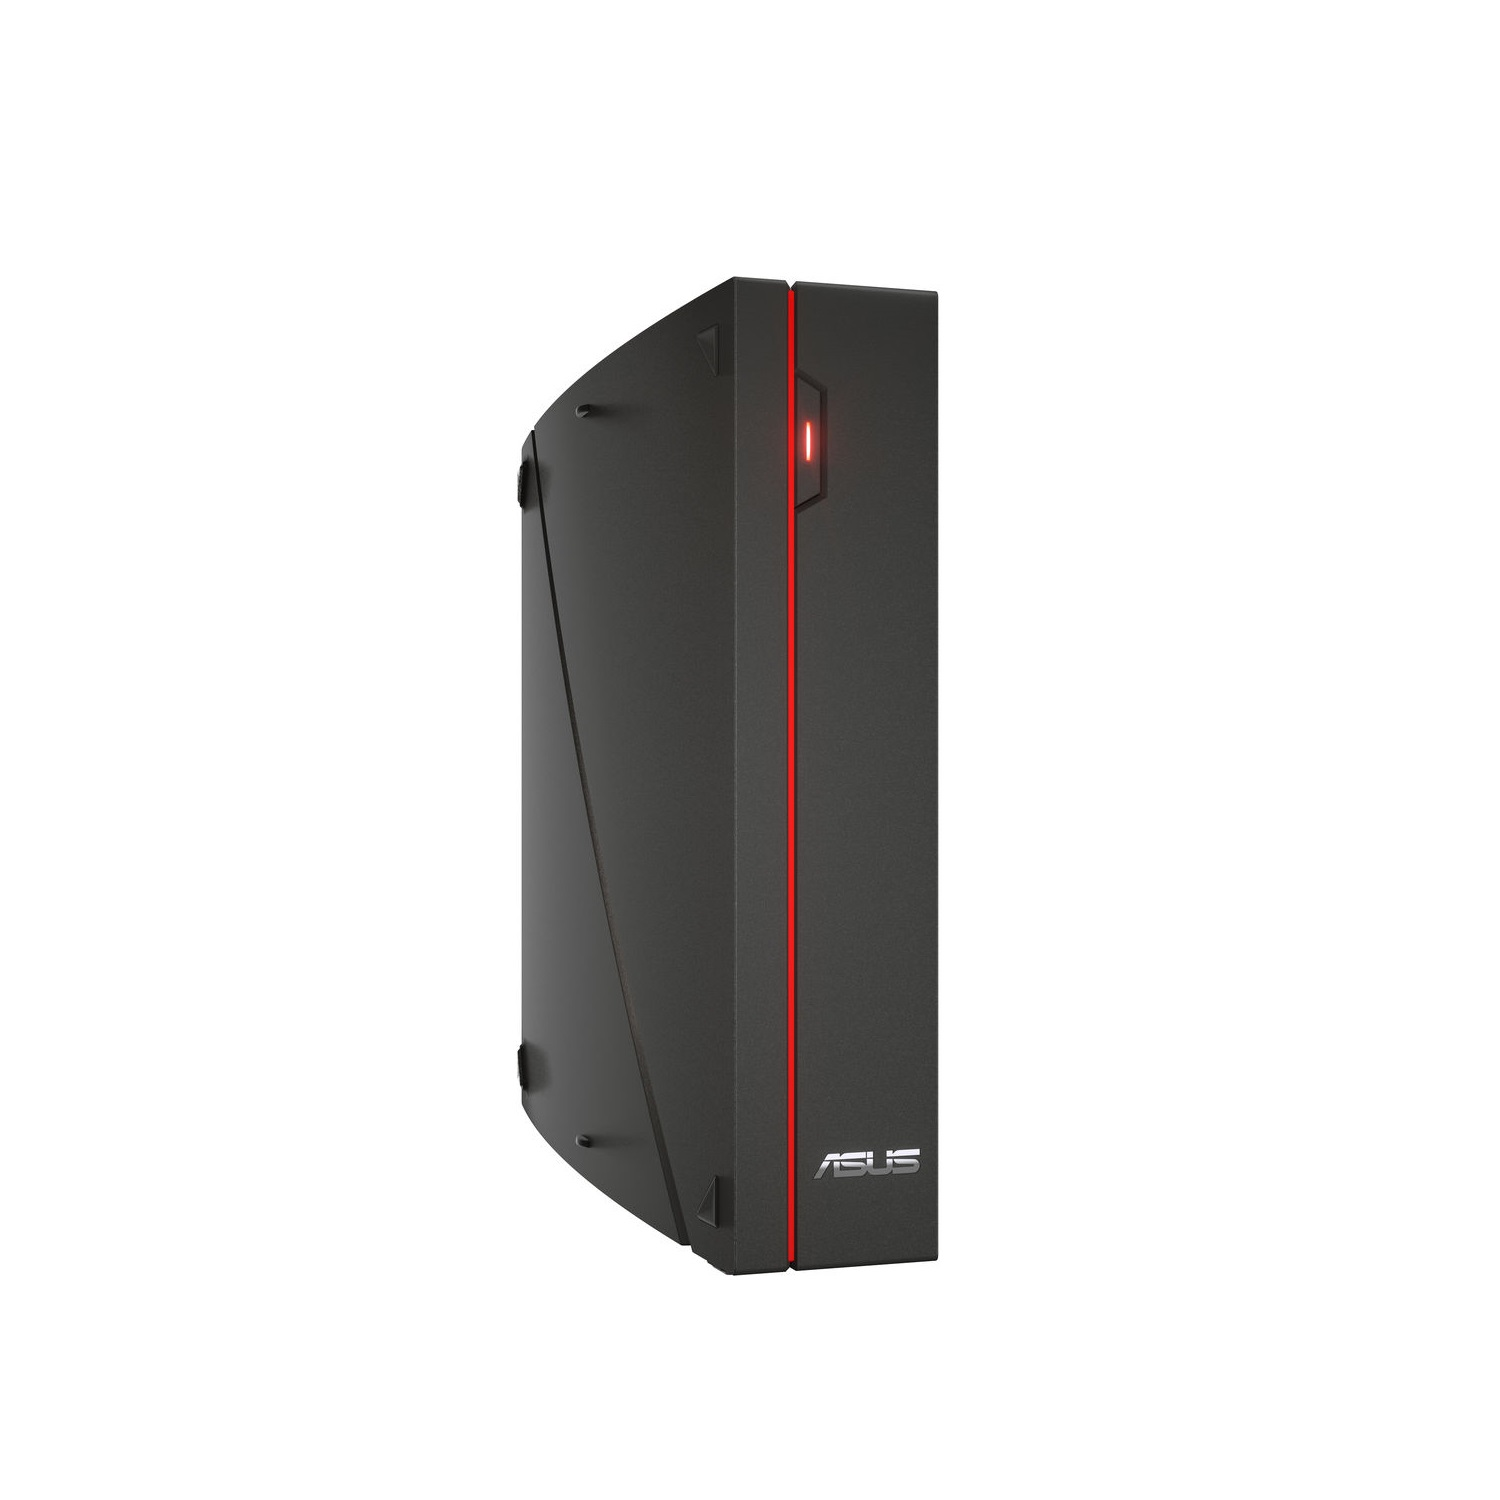 Asus VivoPC X with Intel i5-7300HQ, 8GB 1TB HDD by ASUS